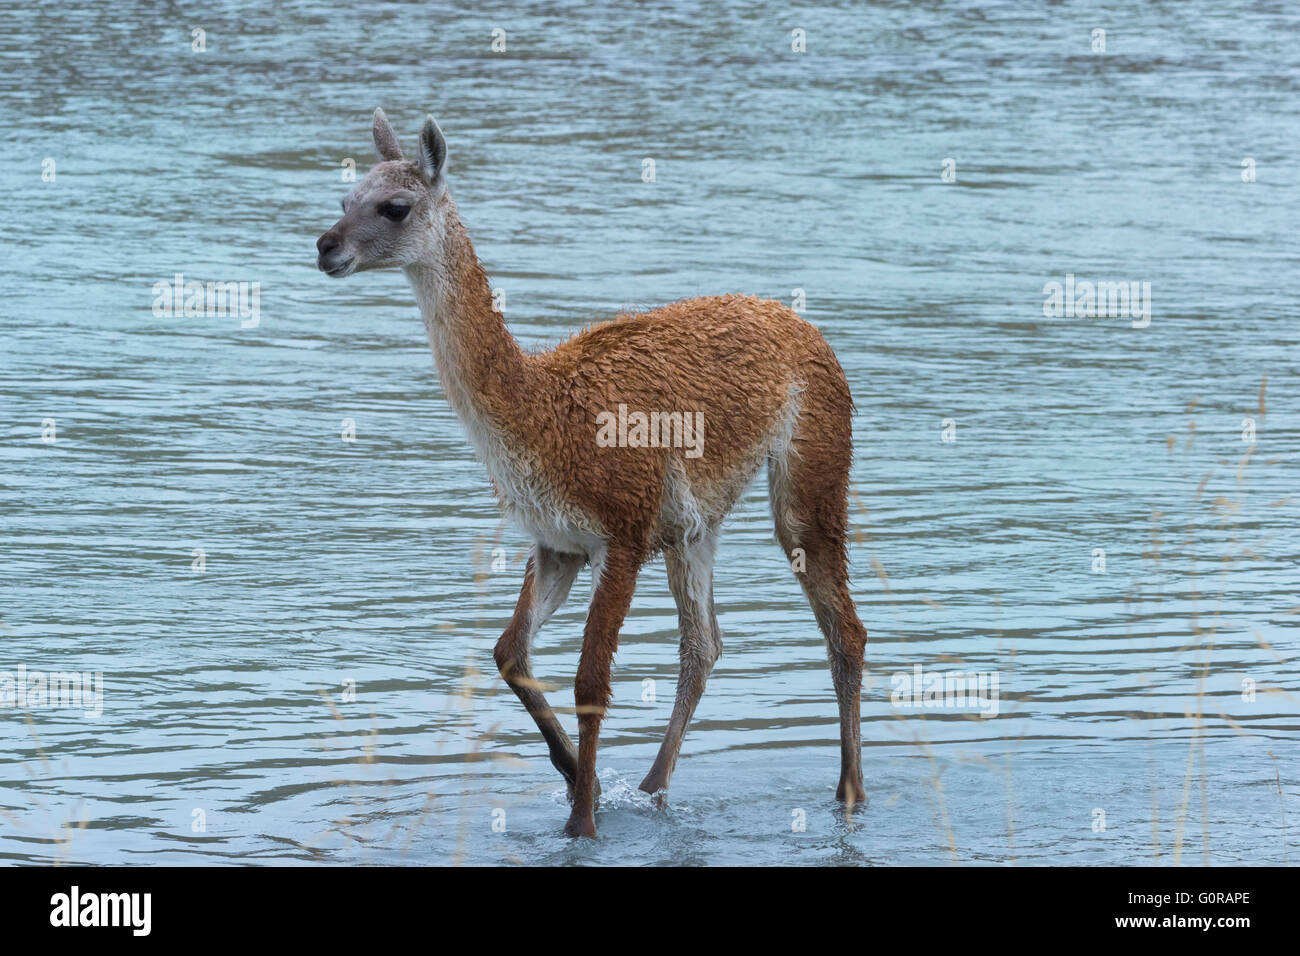 Guanaco (Lama guanicoe) crossing a river, Torres del Paine National Park, Chilean Patagonia, Chile - Stock Image